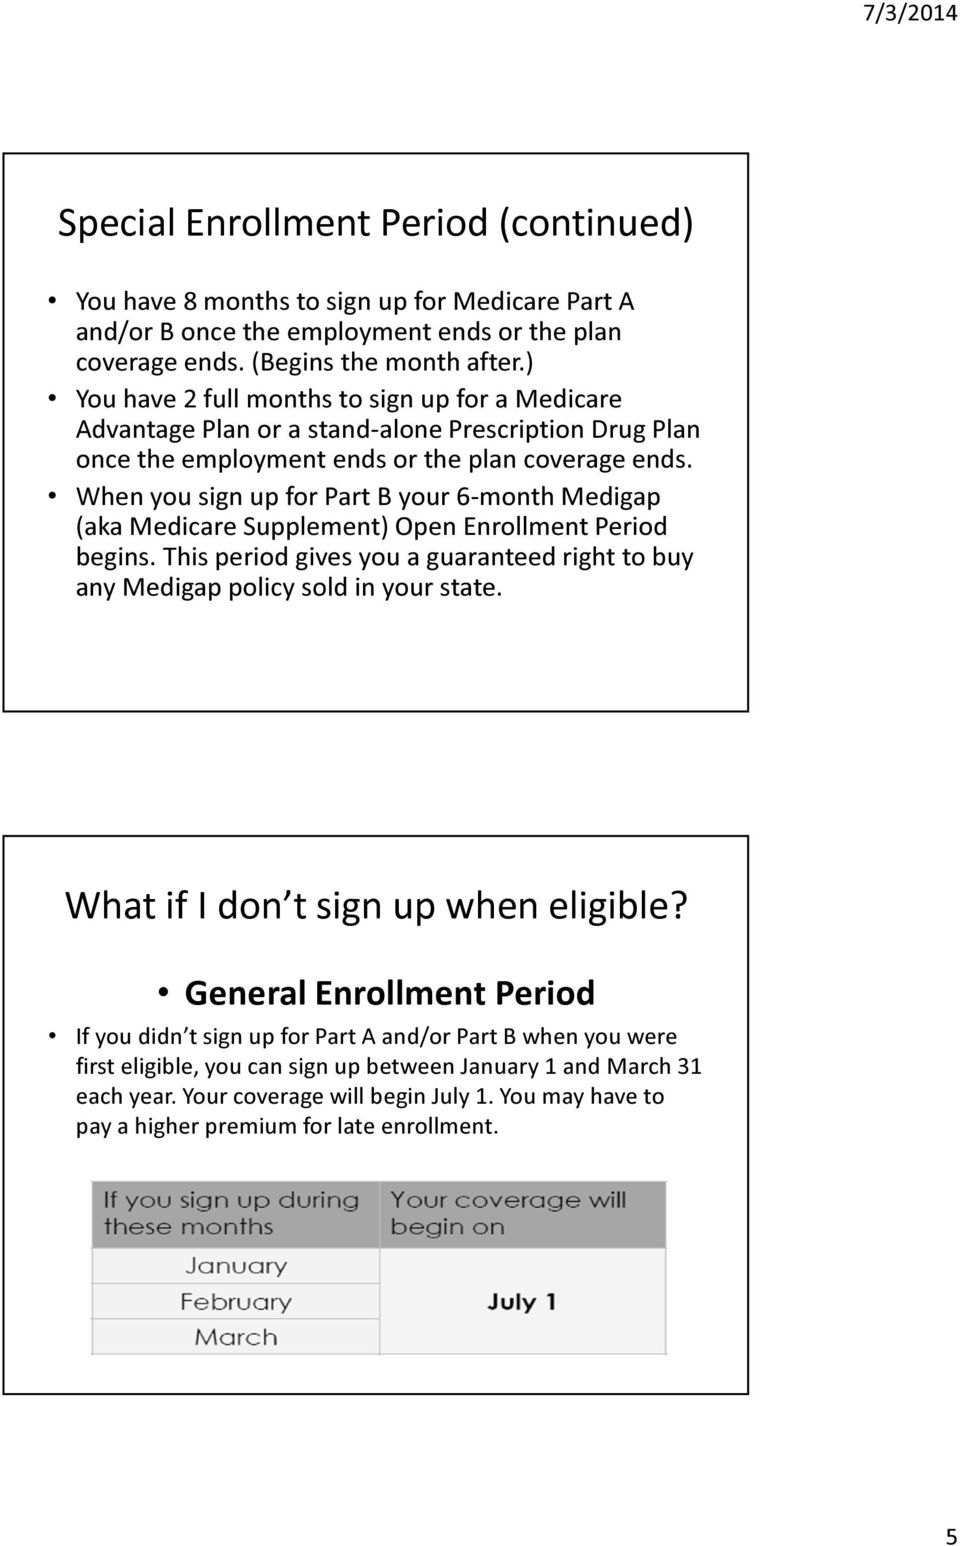 When you sign up for Part B your 6-month Medigap (aka Medicare Supplement) Open Enrollment Period begins. This period gives you a guaranteed right to buy any Medigap policy sold in your state.